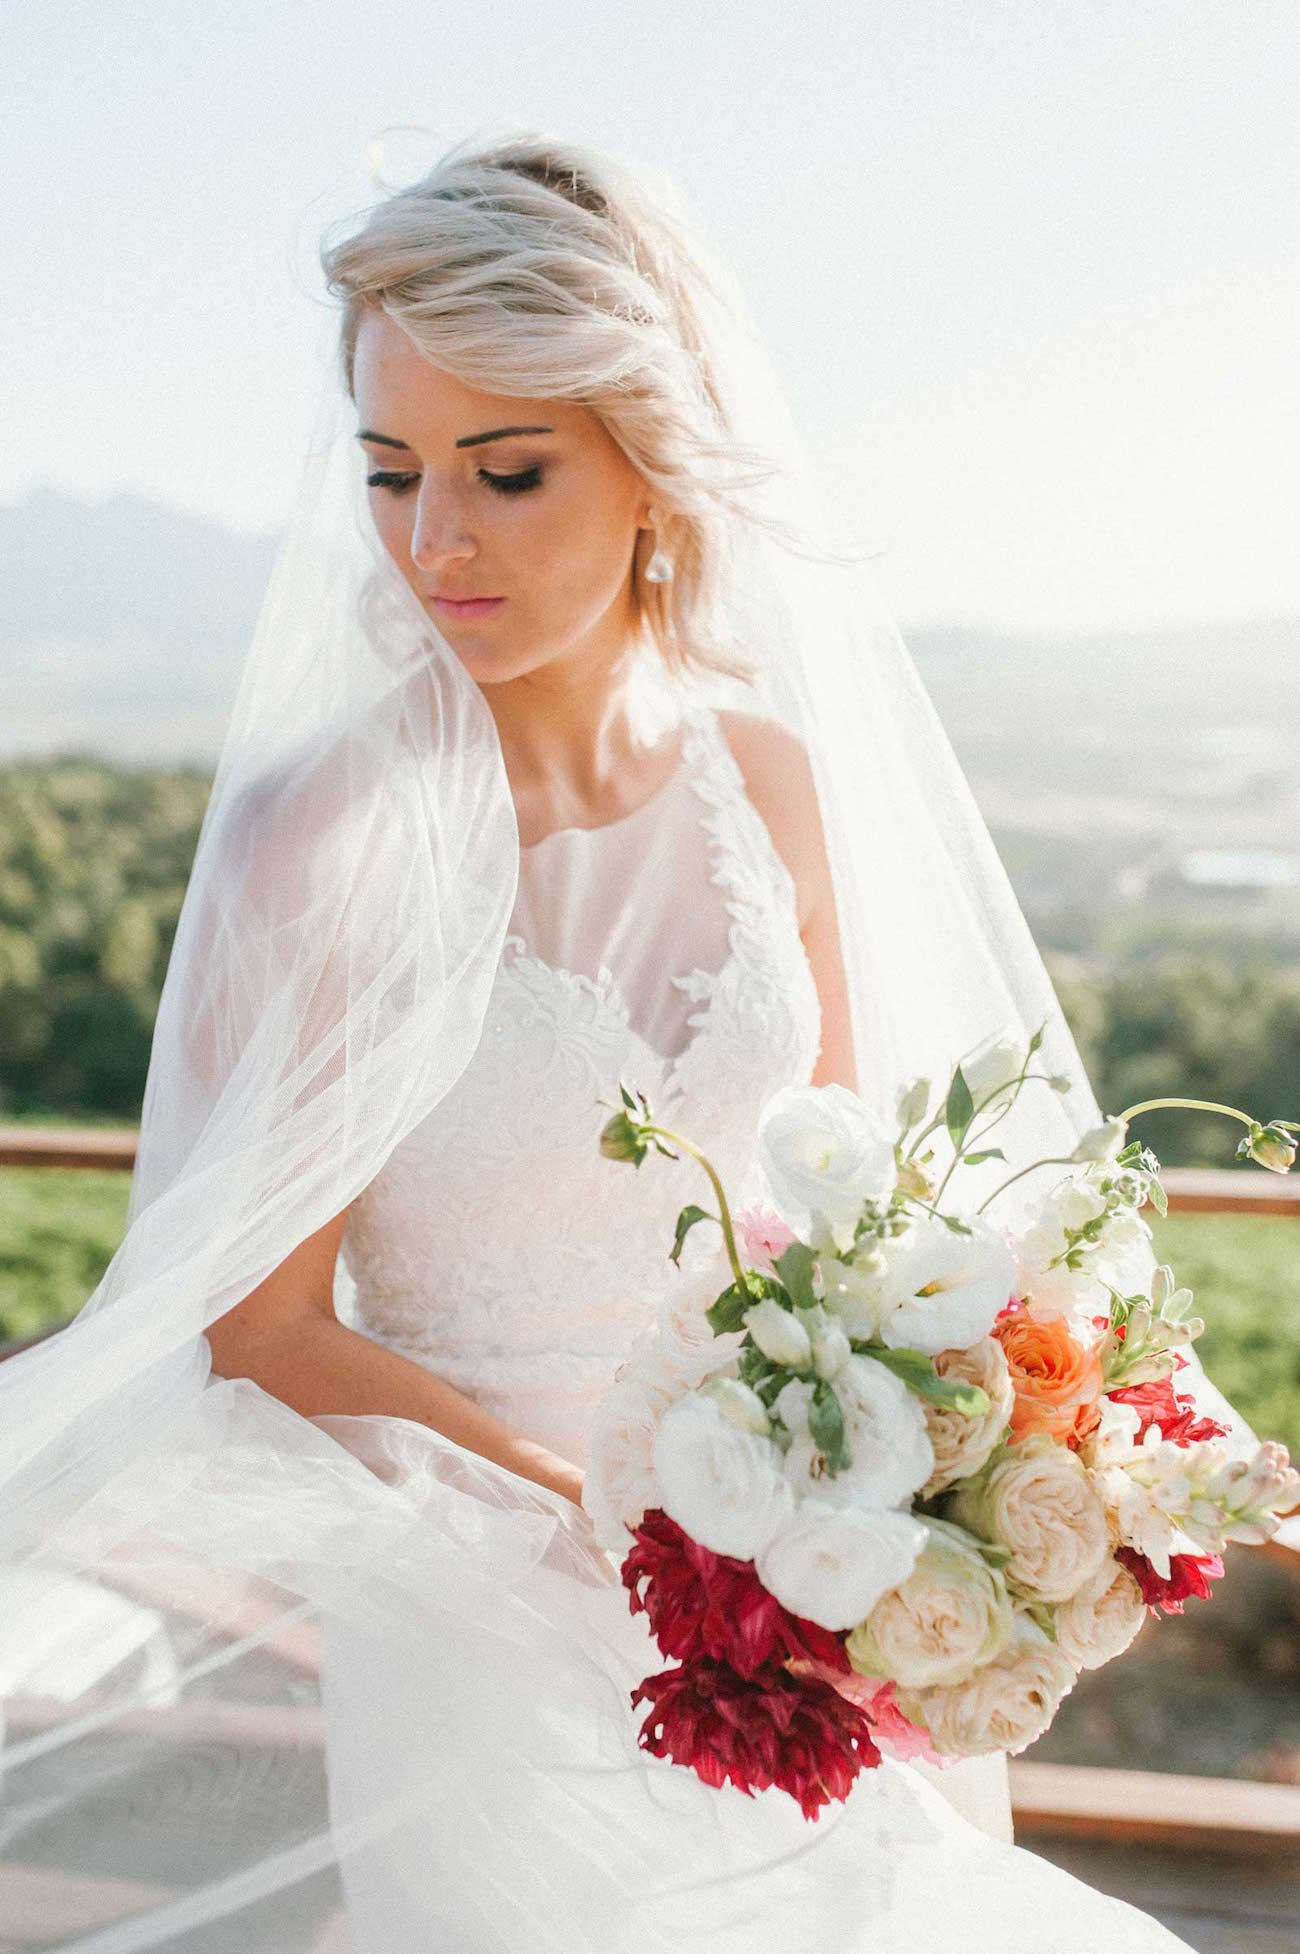 020 MT Whimsical Vintage Wedding By Claire Thomson